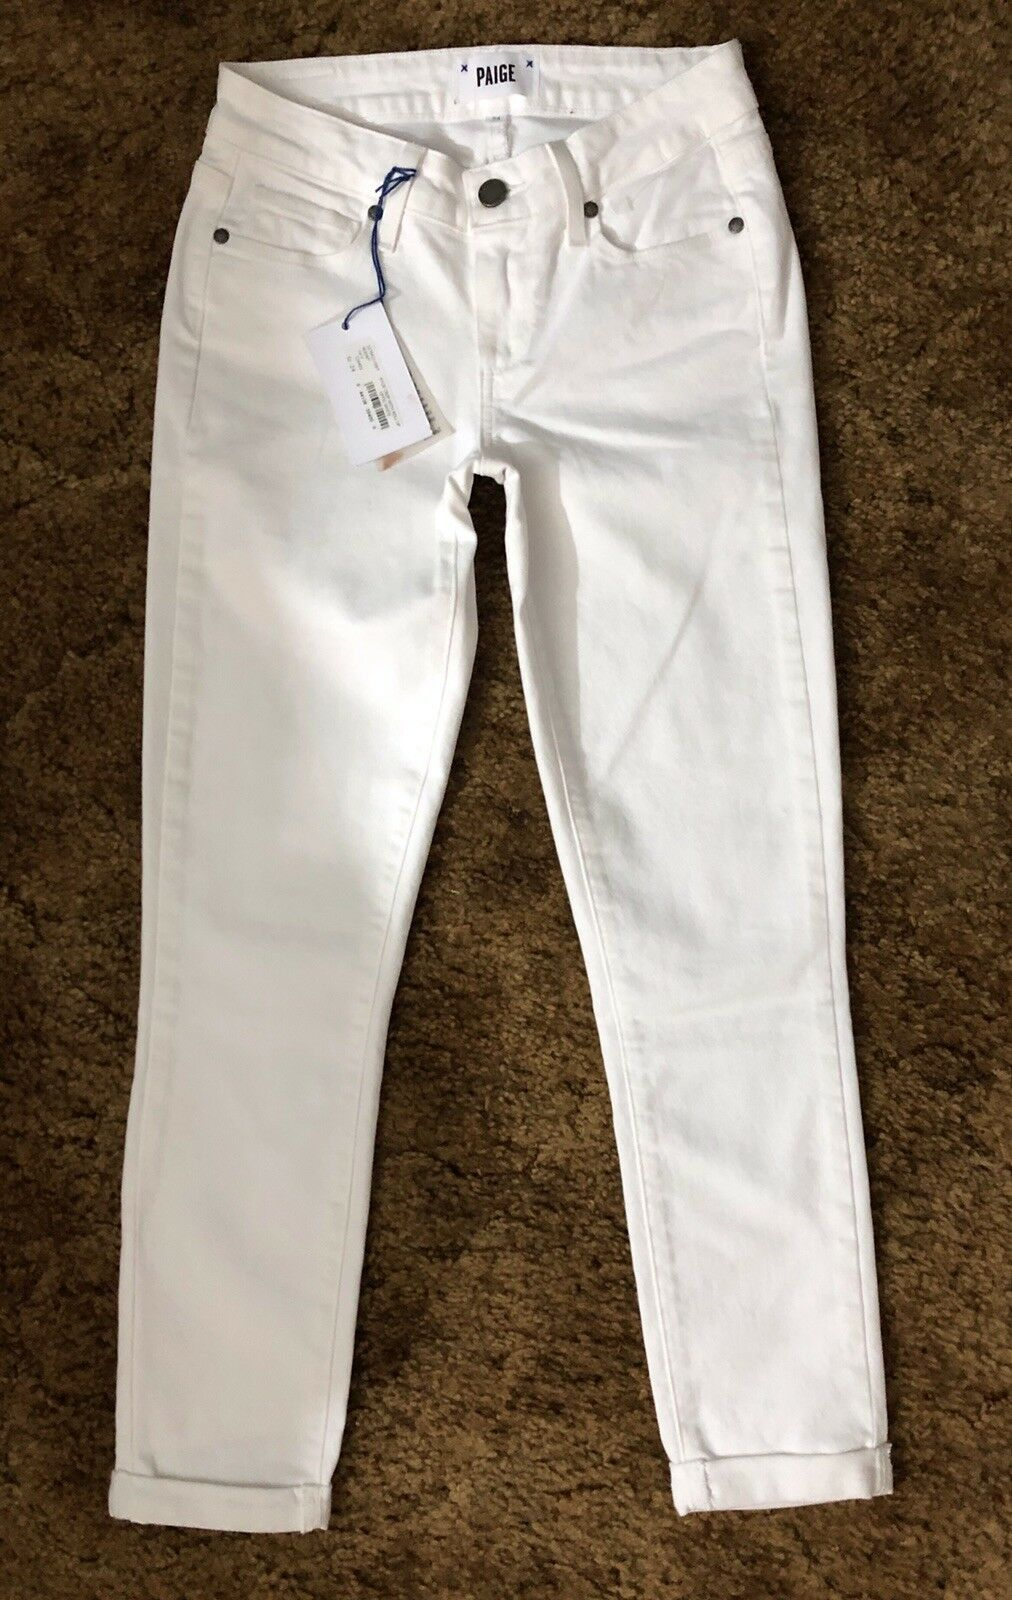 NWT PAIGE Premium Kylie Crop With Roll Up Womens Jeans In Optic White Size 24